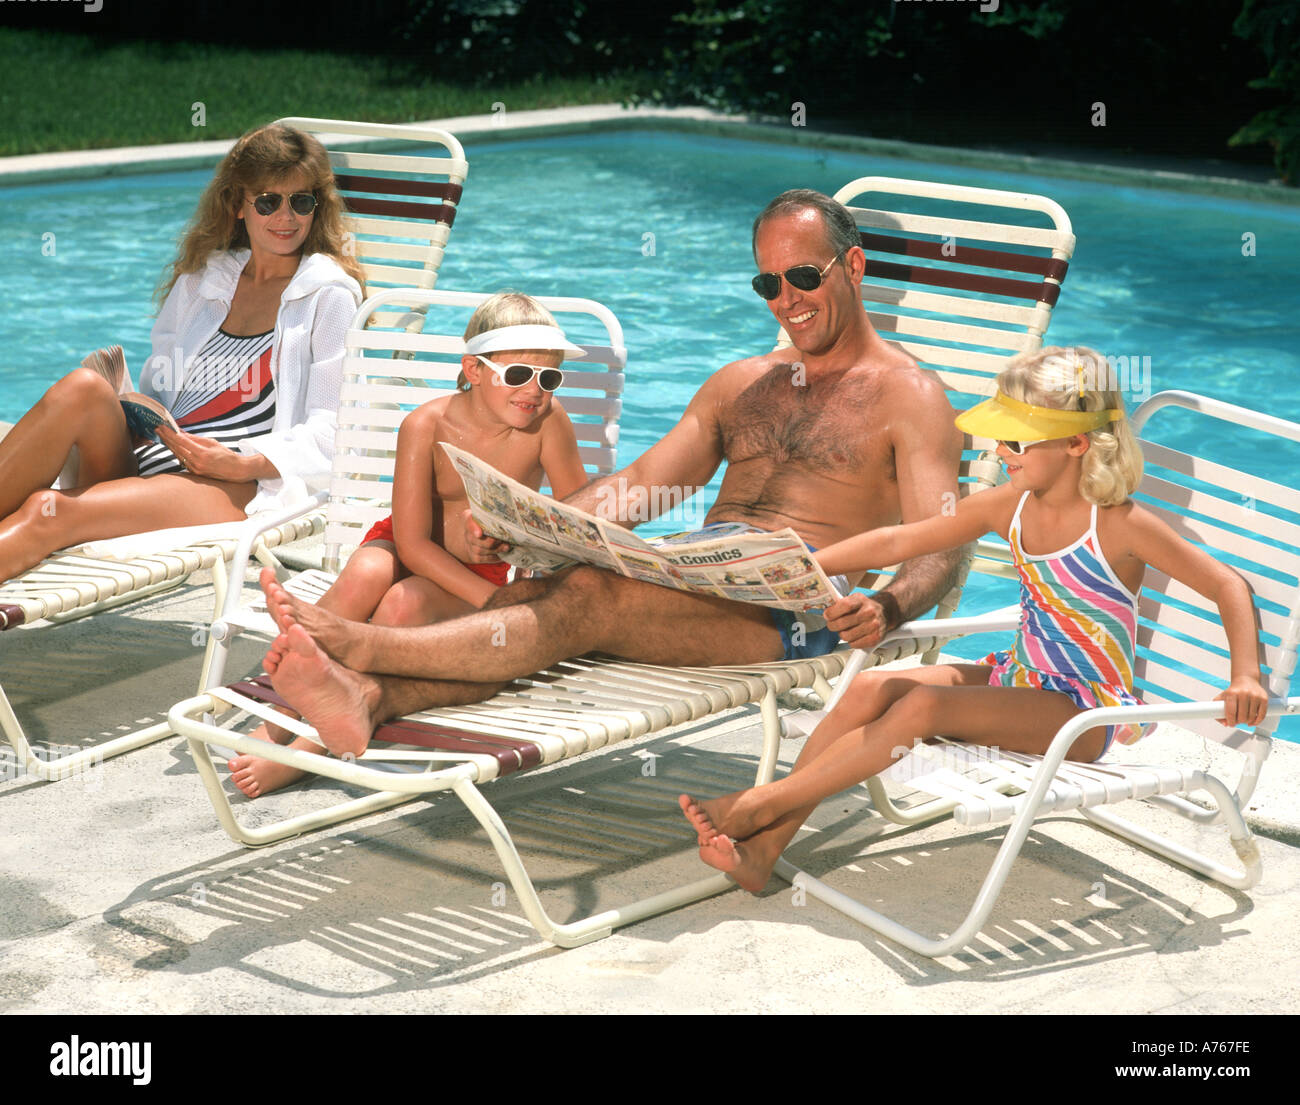 family of four relaxing by pool reading comics - Stock Image